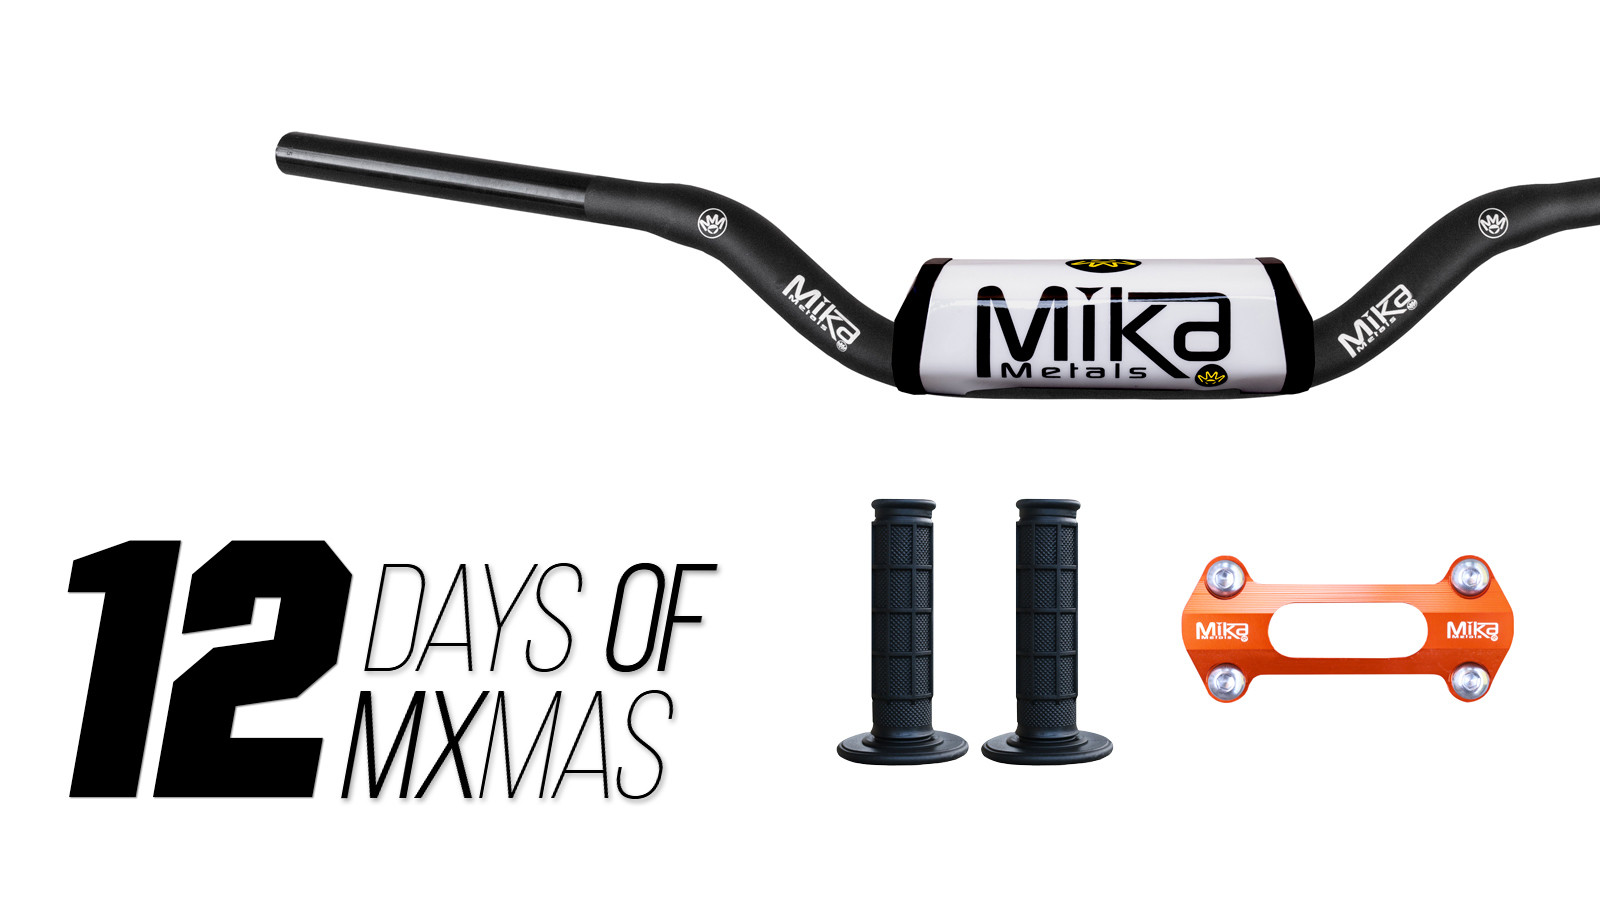 12 Days of MXmas: Mika Metals